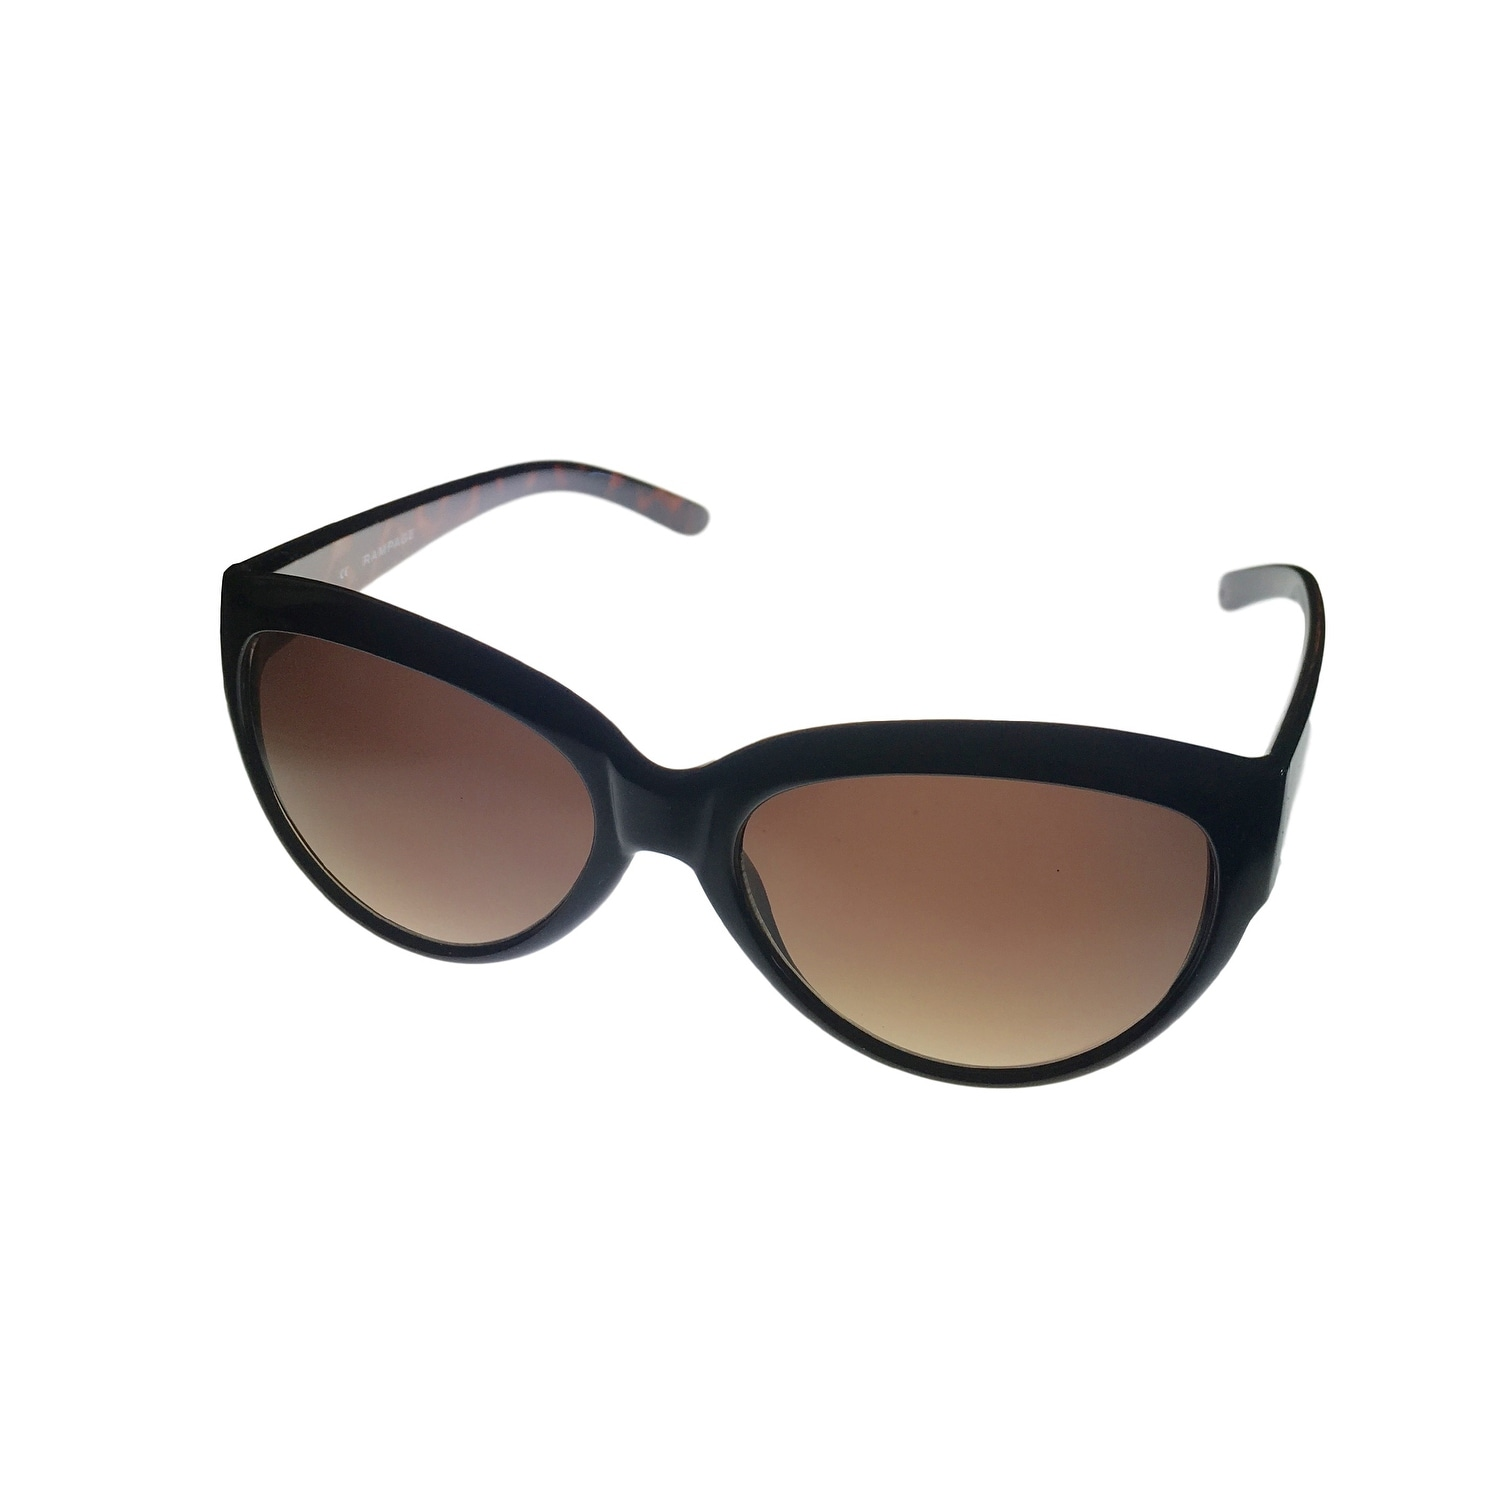 Rampage Womens Sunglass Black Modified Cat, Smoke Gradient Lens RS 1009 - Medium - Thumbnail 0